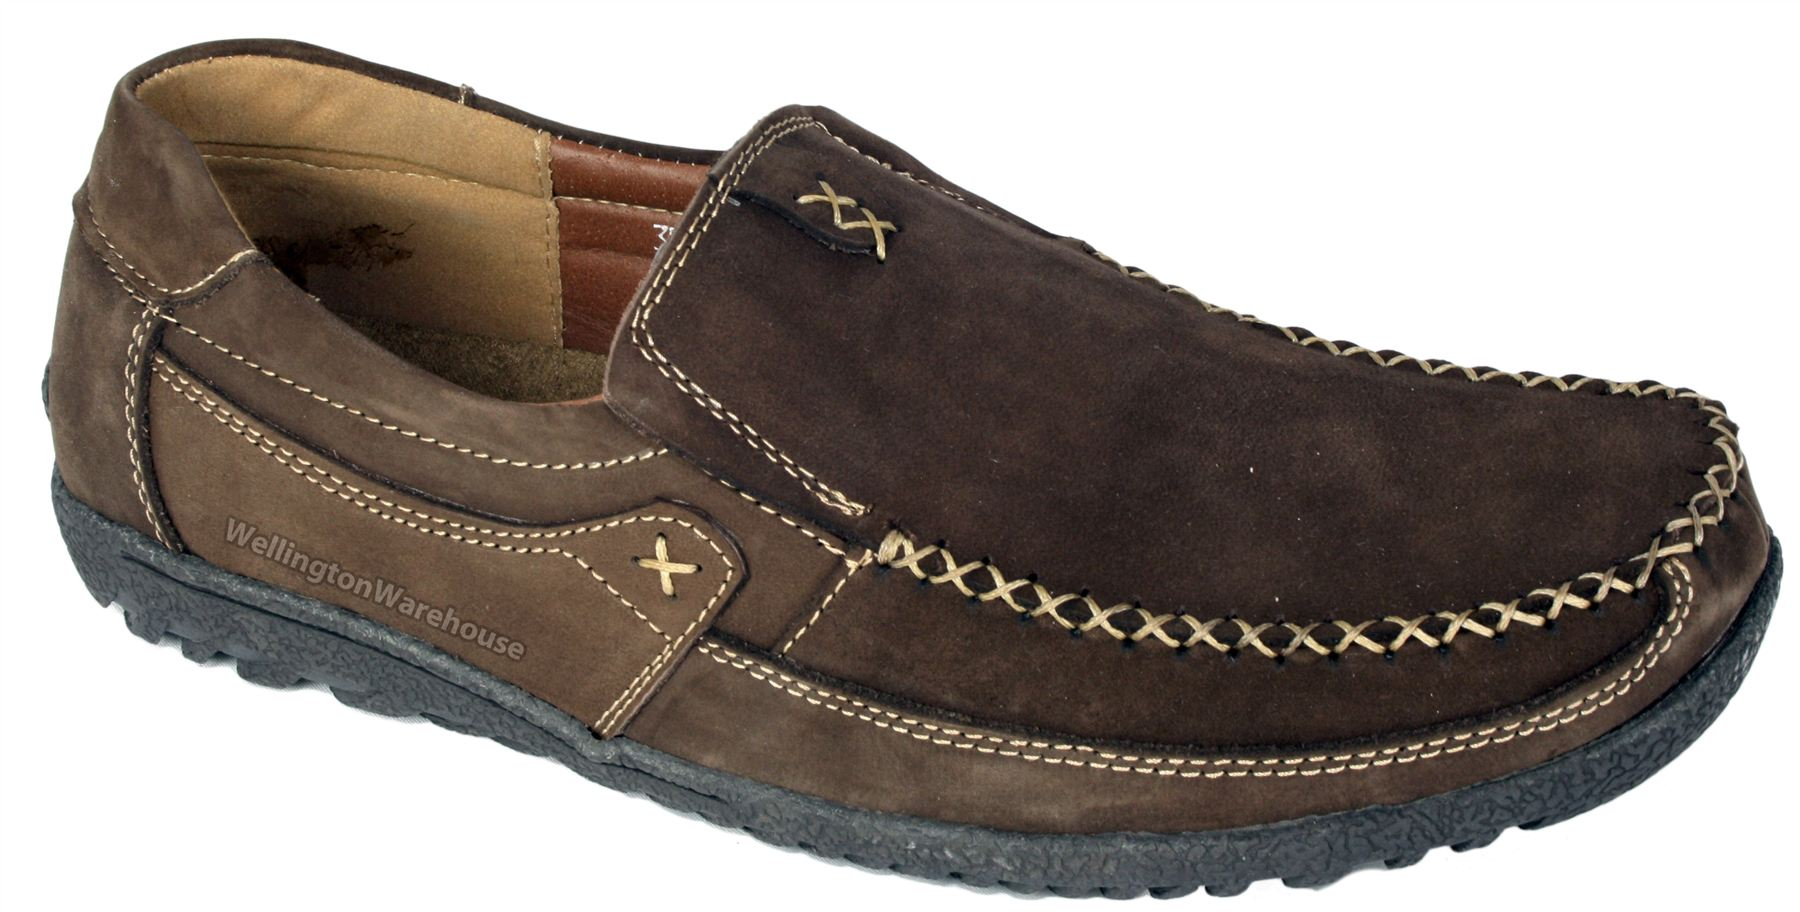 Mens Monaco tan or brown soft leather